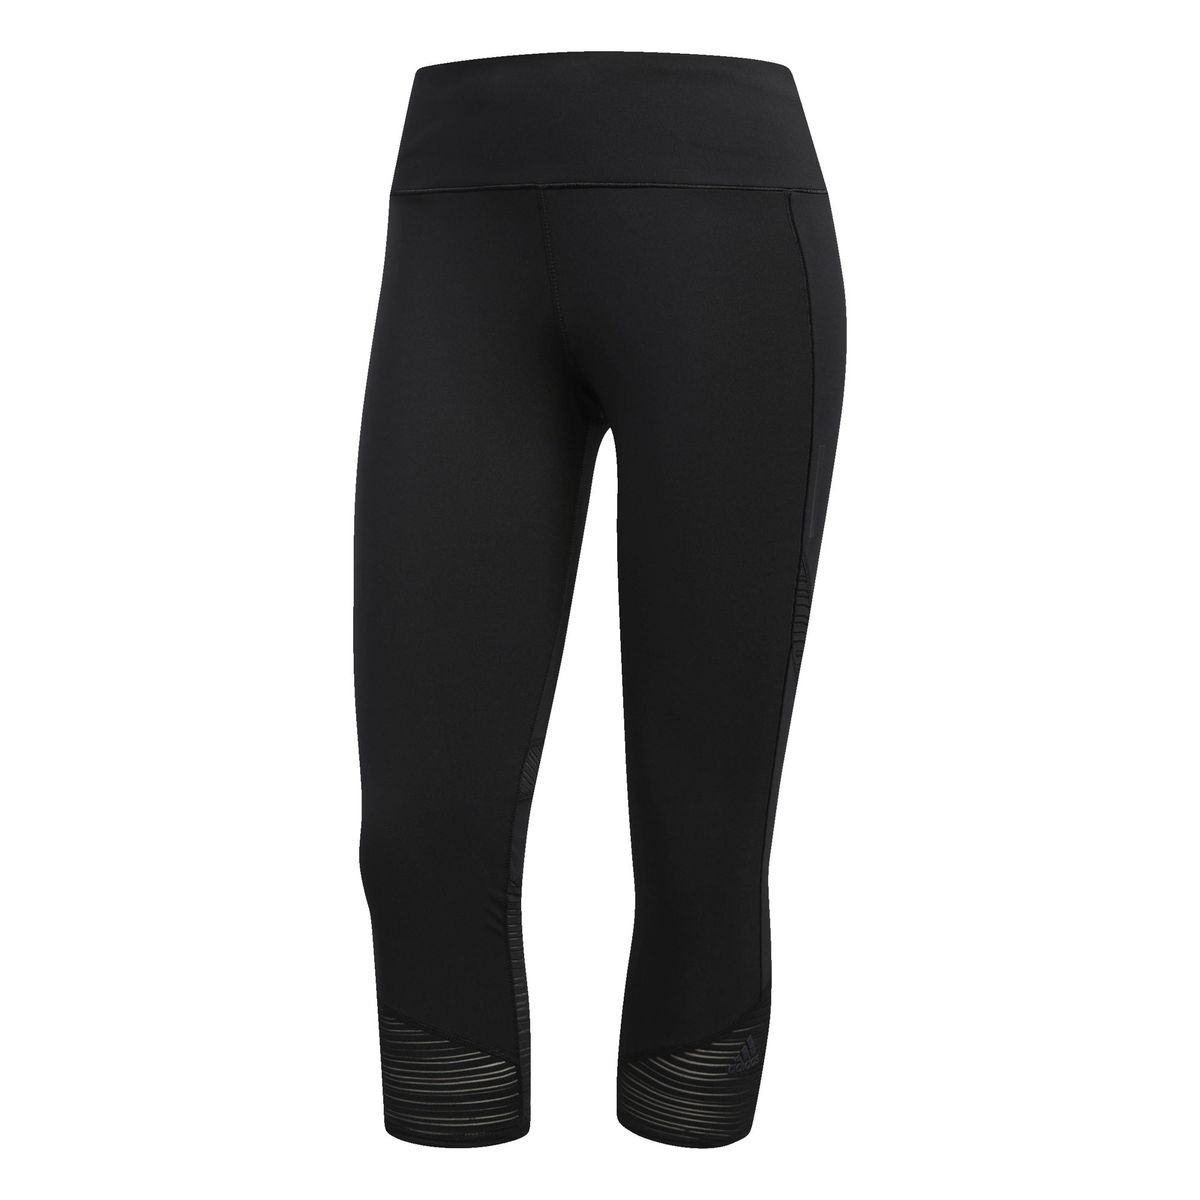 Tight How We Do 34 Taille : XXS;XS;S;M;L;XL | Adidas noir